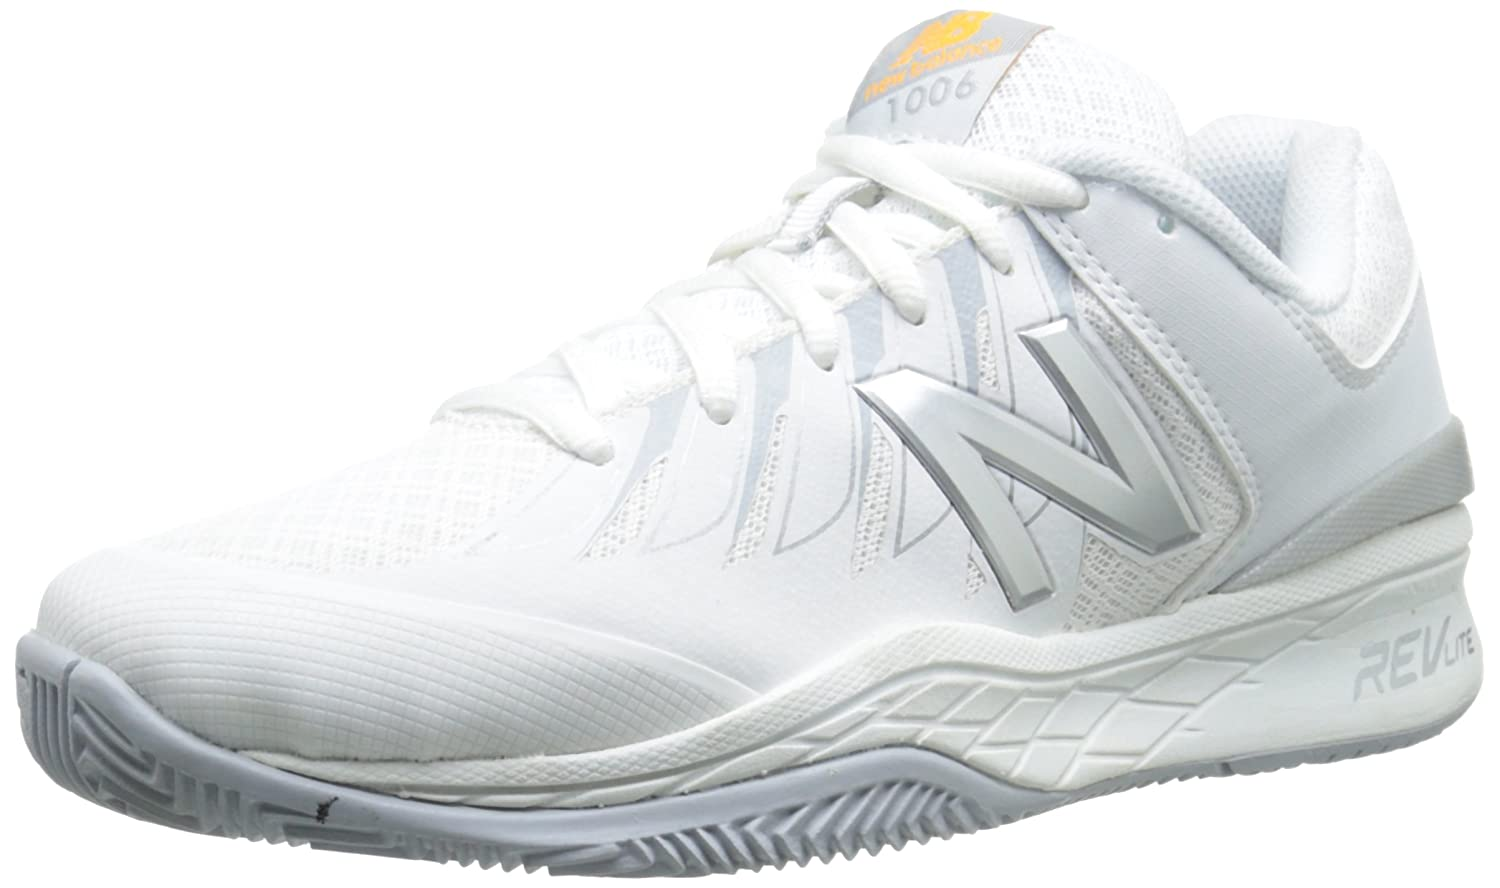 New Balance Women's WC1006v1 Tennis Shoe B00V3NH9XE 10.5 2A US|White/Silver